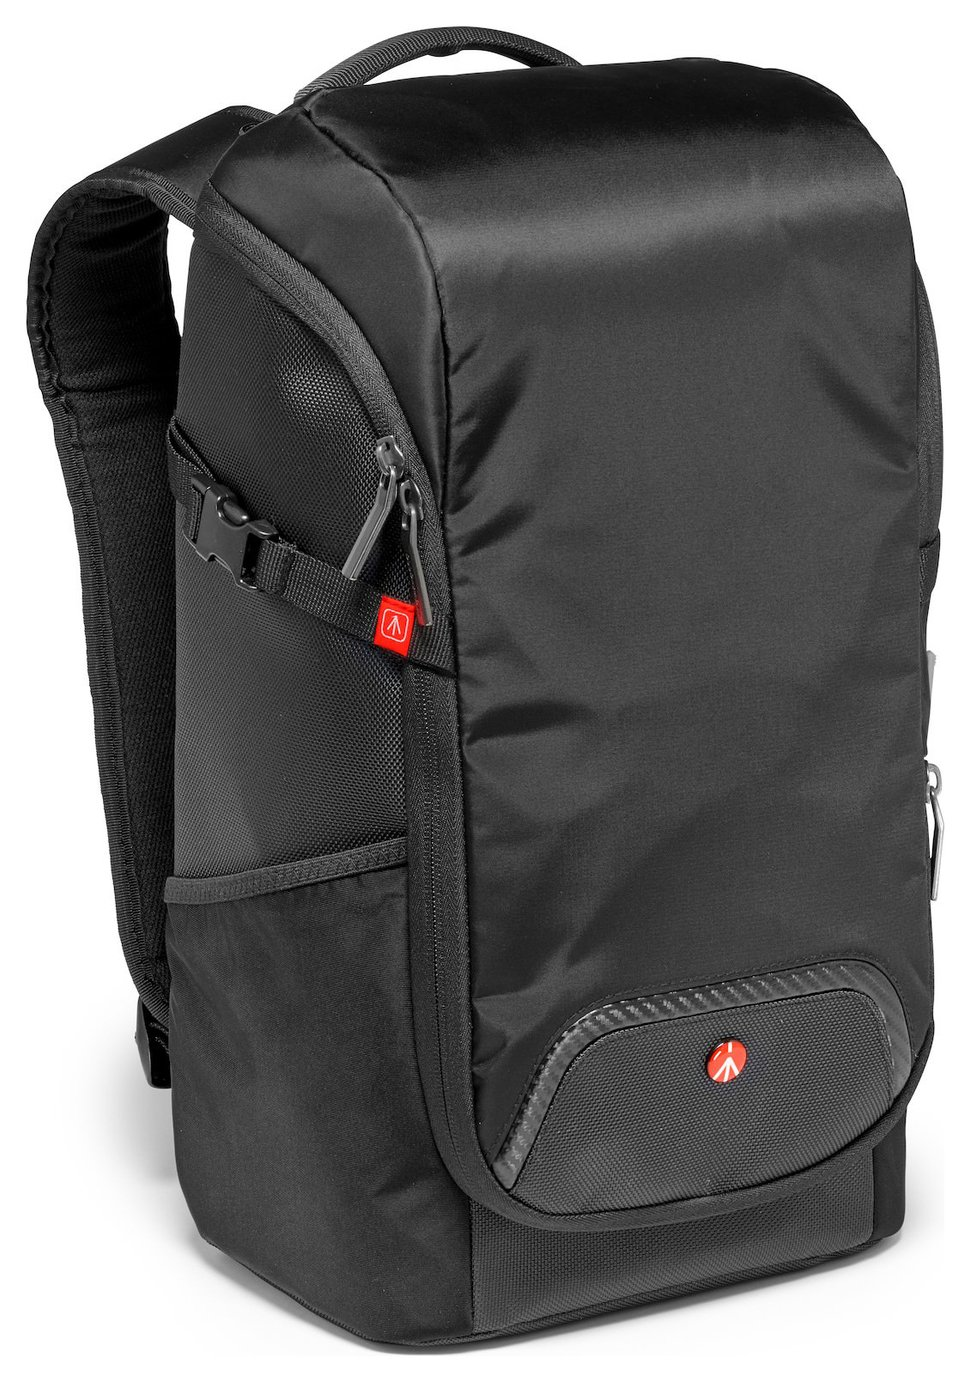 Image of Manfrotto Compact Camera Backpack